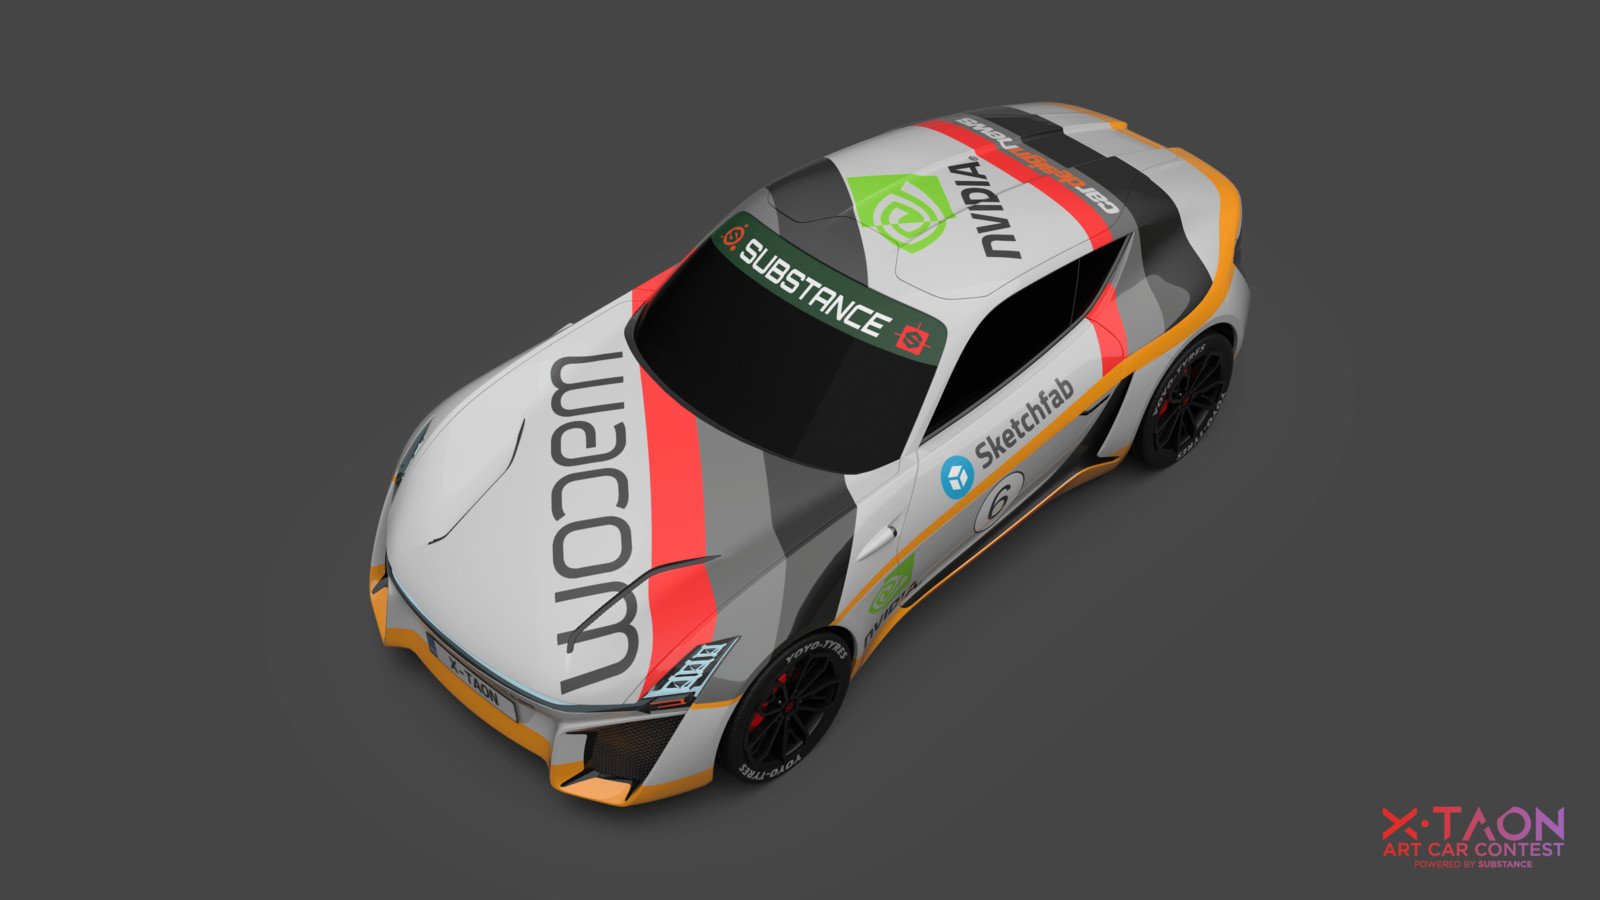 X-TAON GroupB - The Art Car Texturing Contest Entry